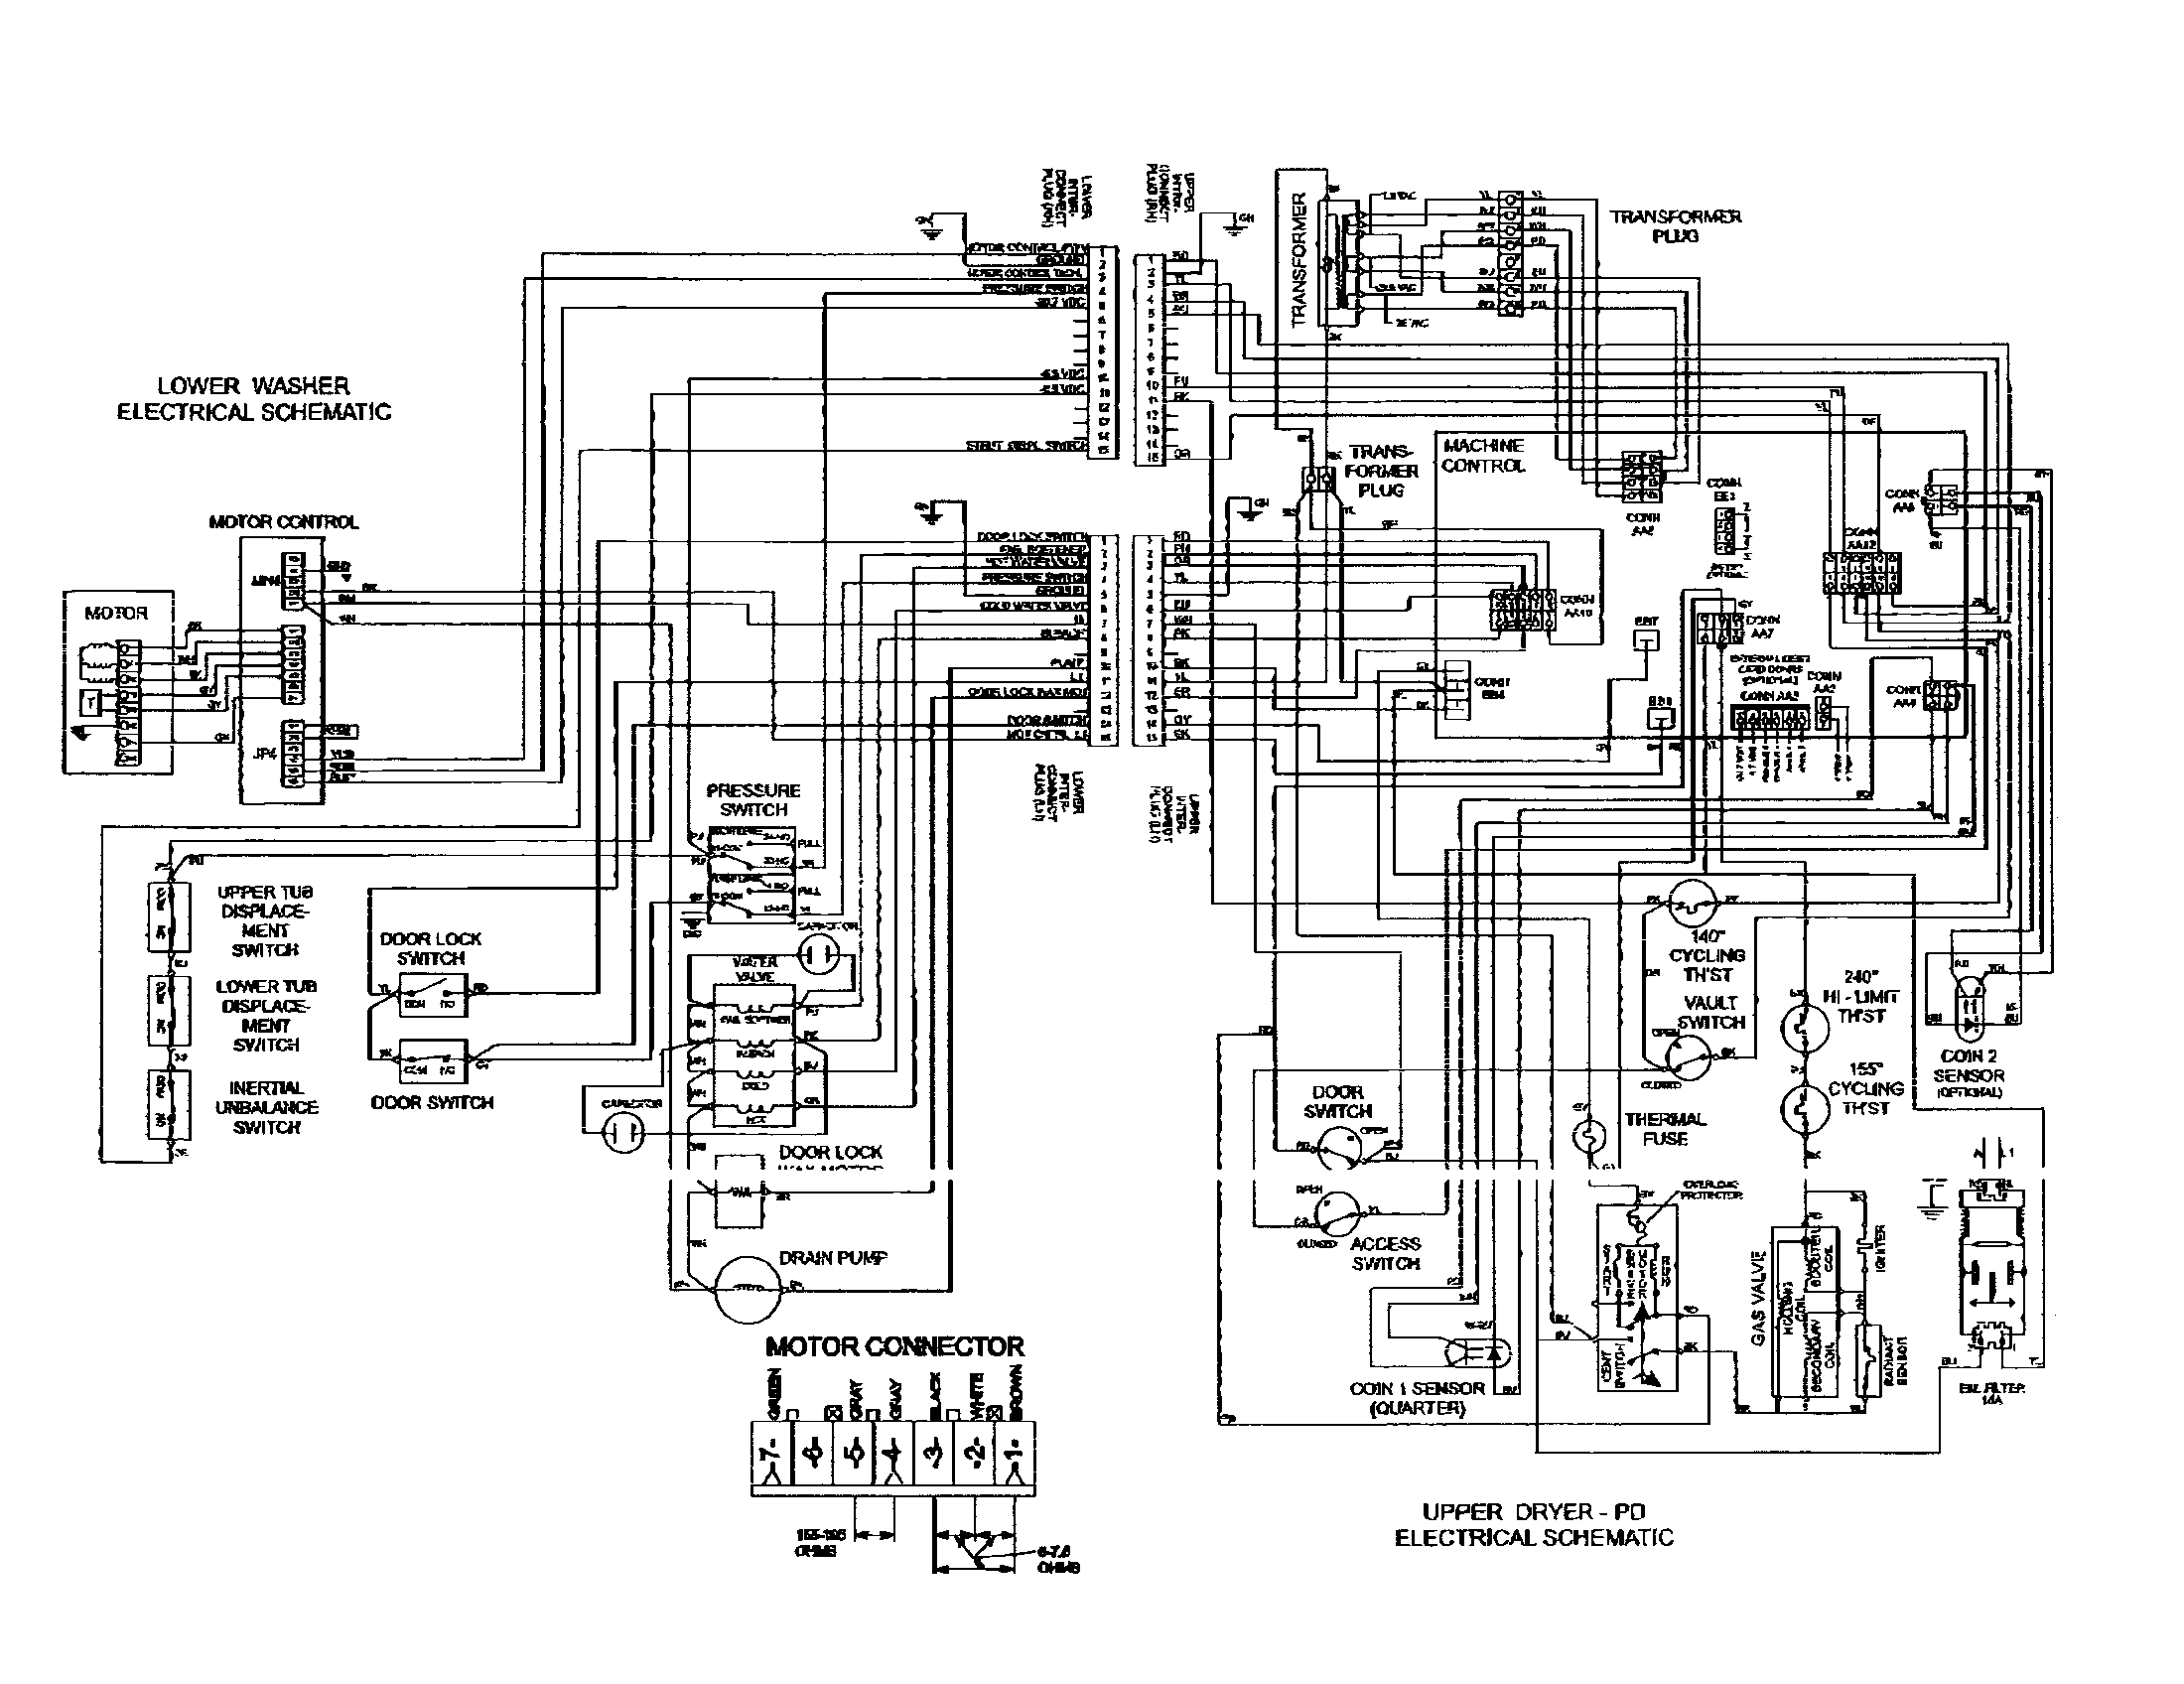 maytag washer wiring diagram Collection-P 7-j. DOWNLOAD. Wiring Diagram ...